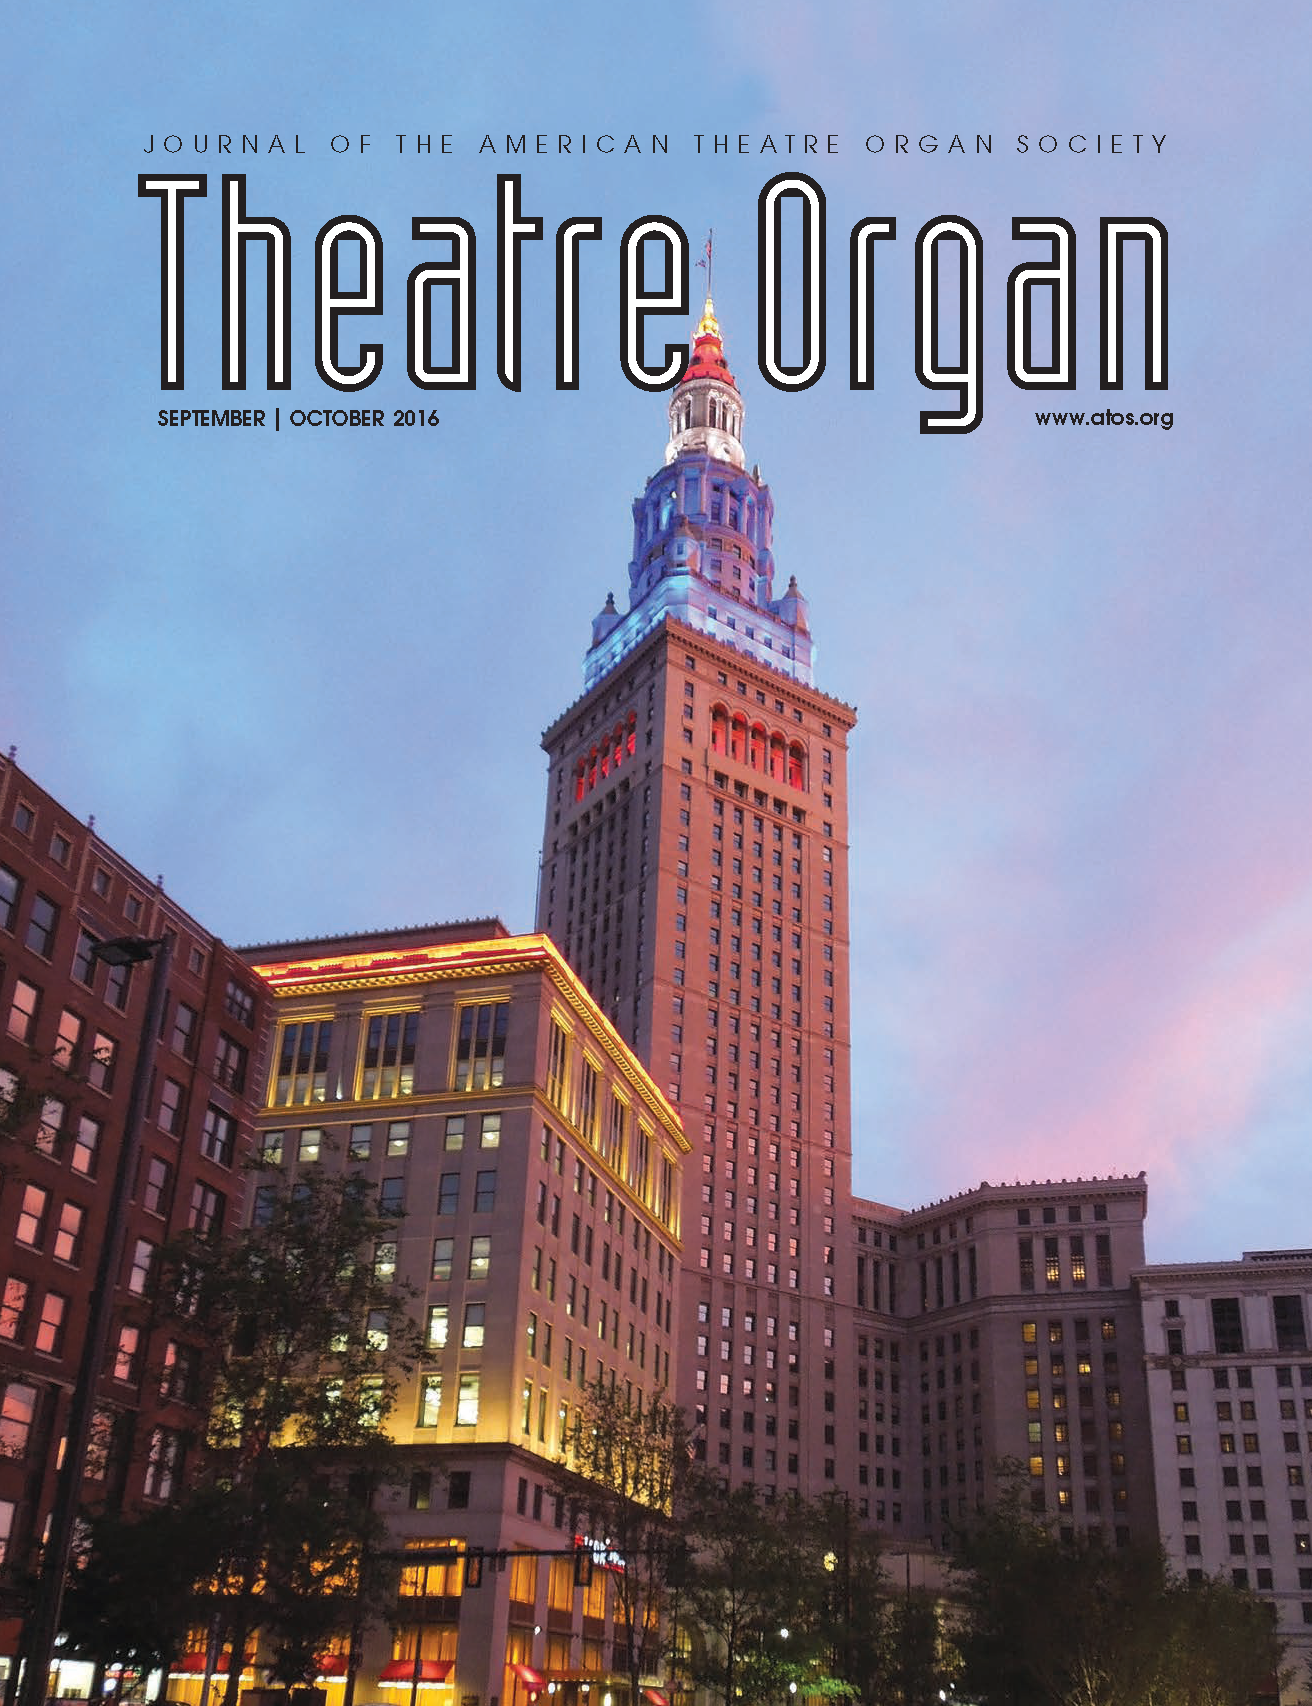 Theatre Organ, September - October 2016, Volume 58, Number 5